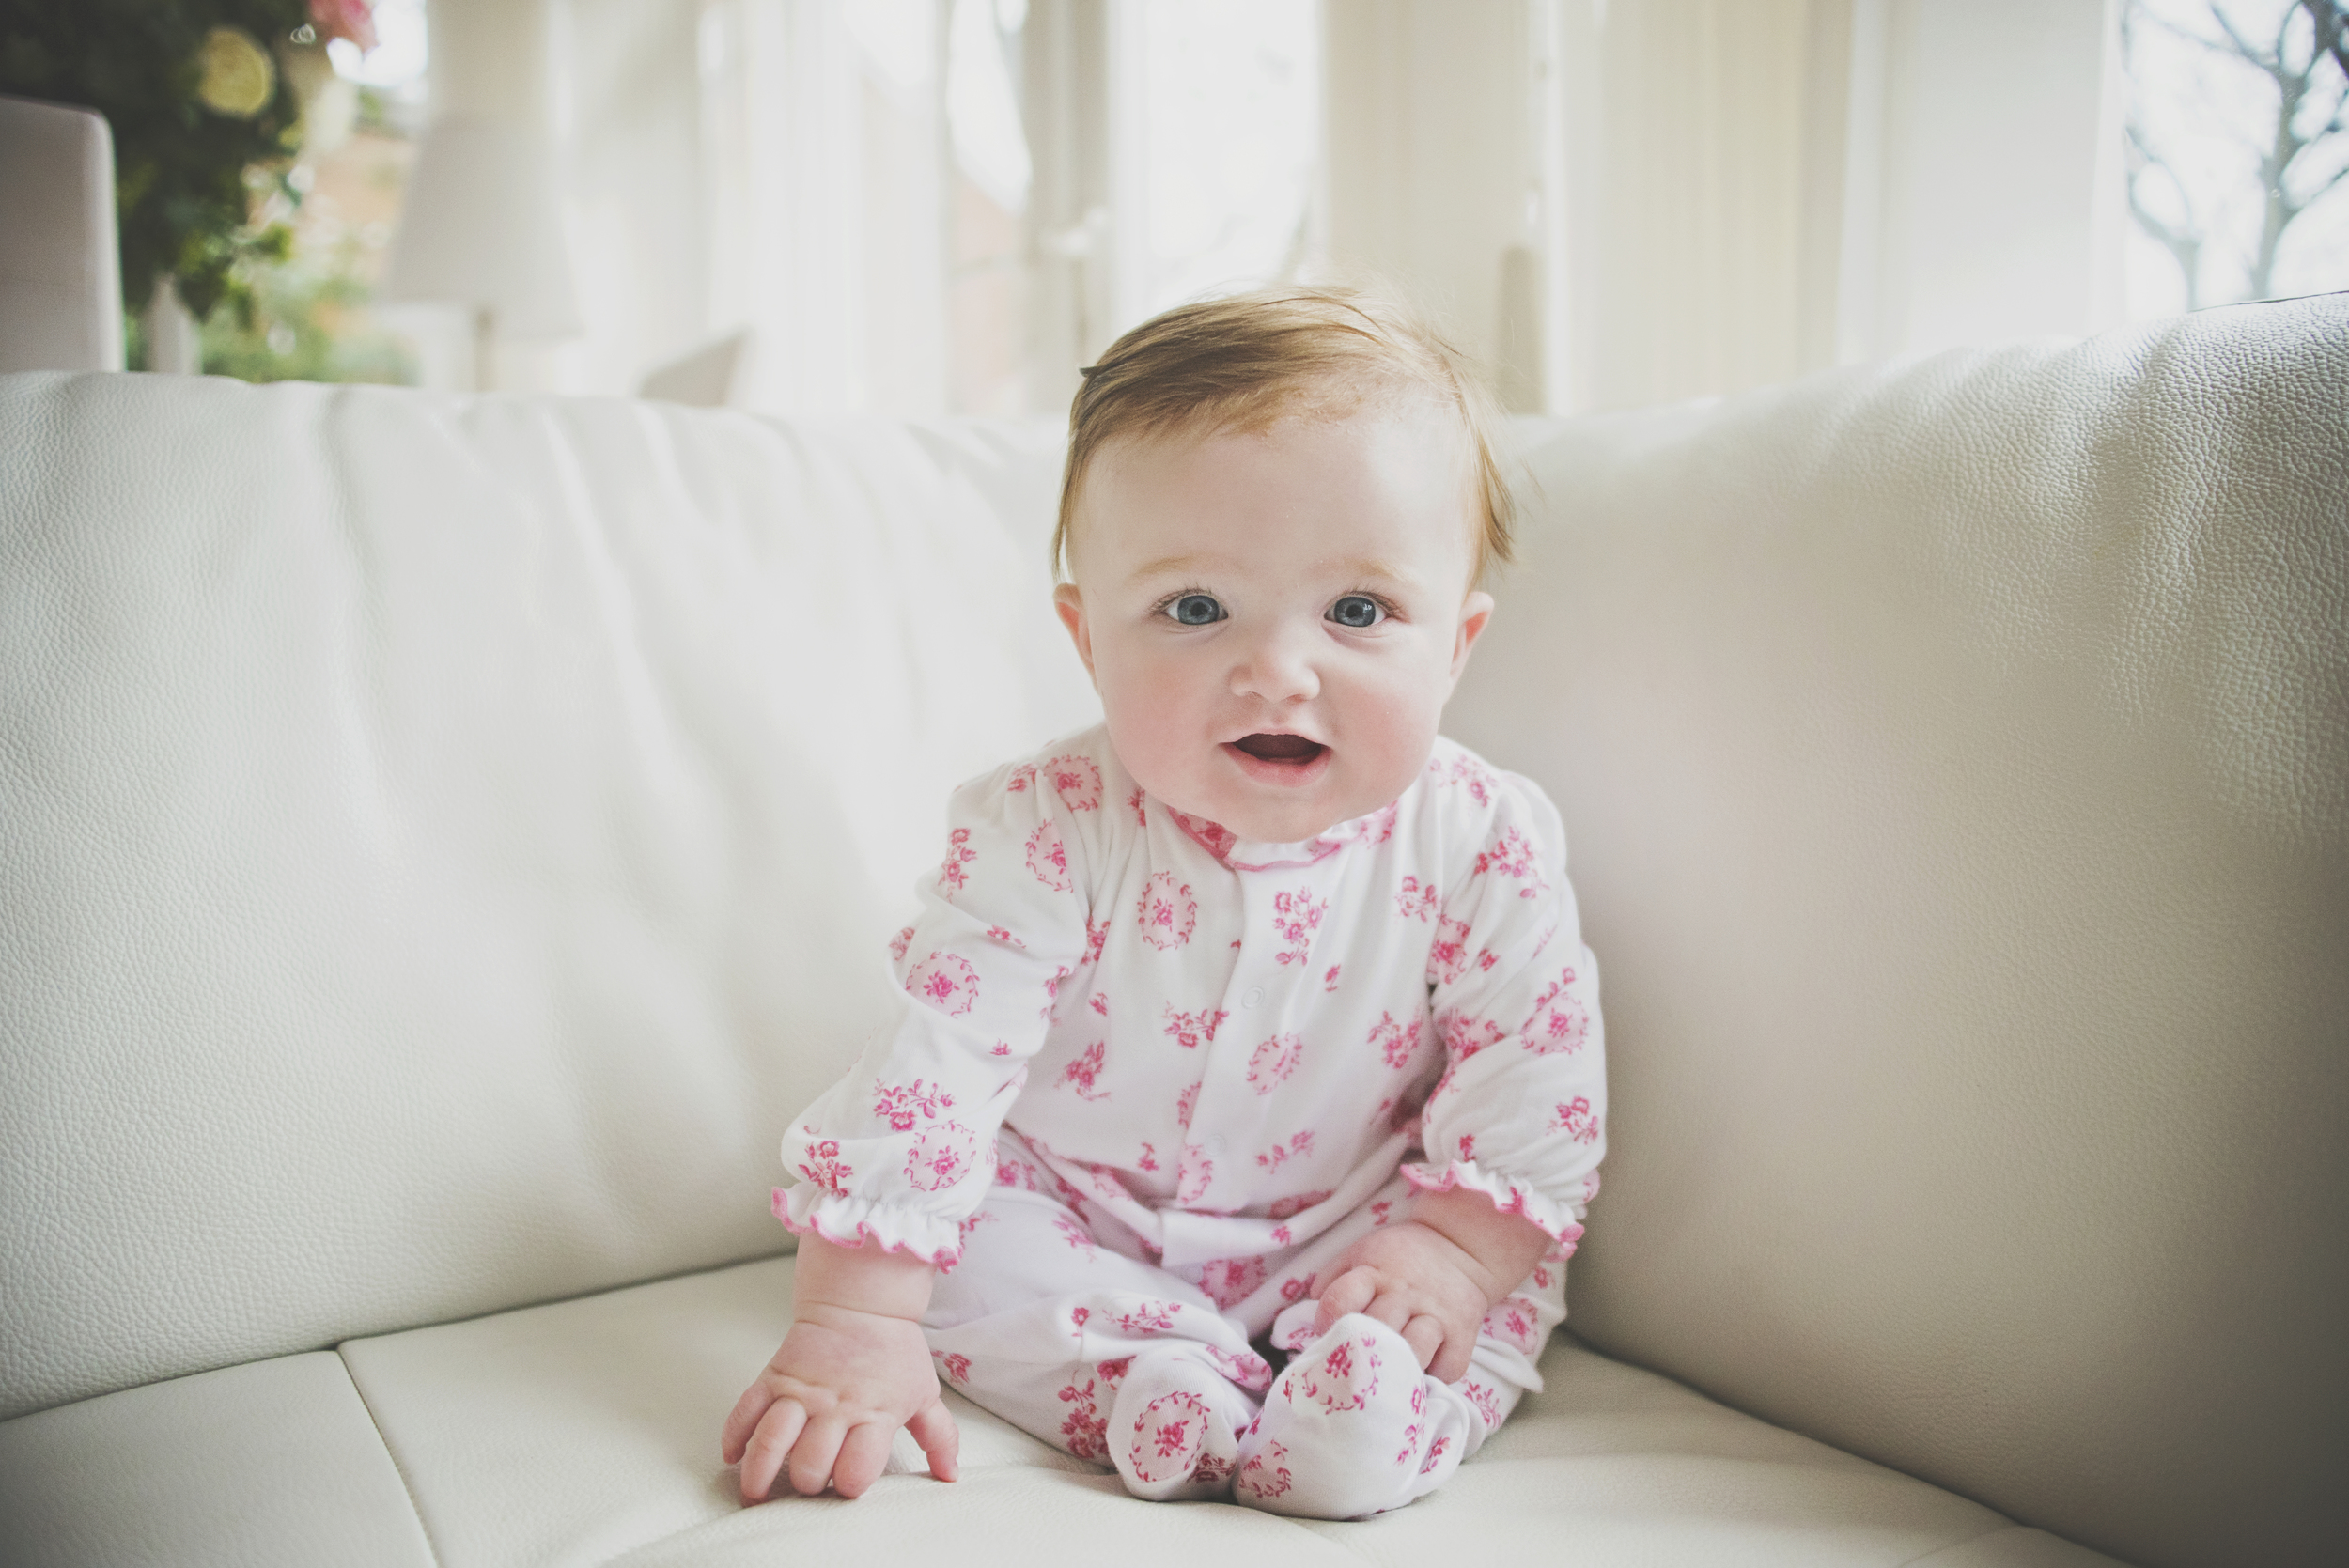 Young baby girl sits on sofa Essex Documentary and Lifestyle Portrait Photographer